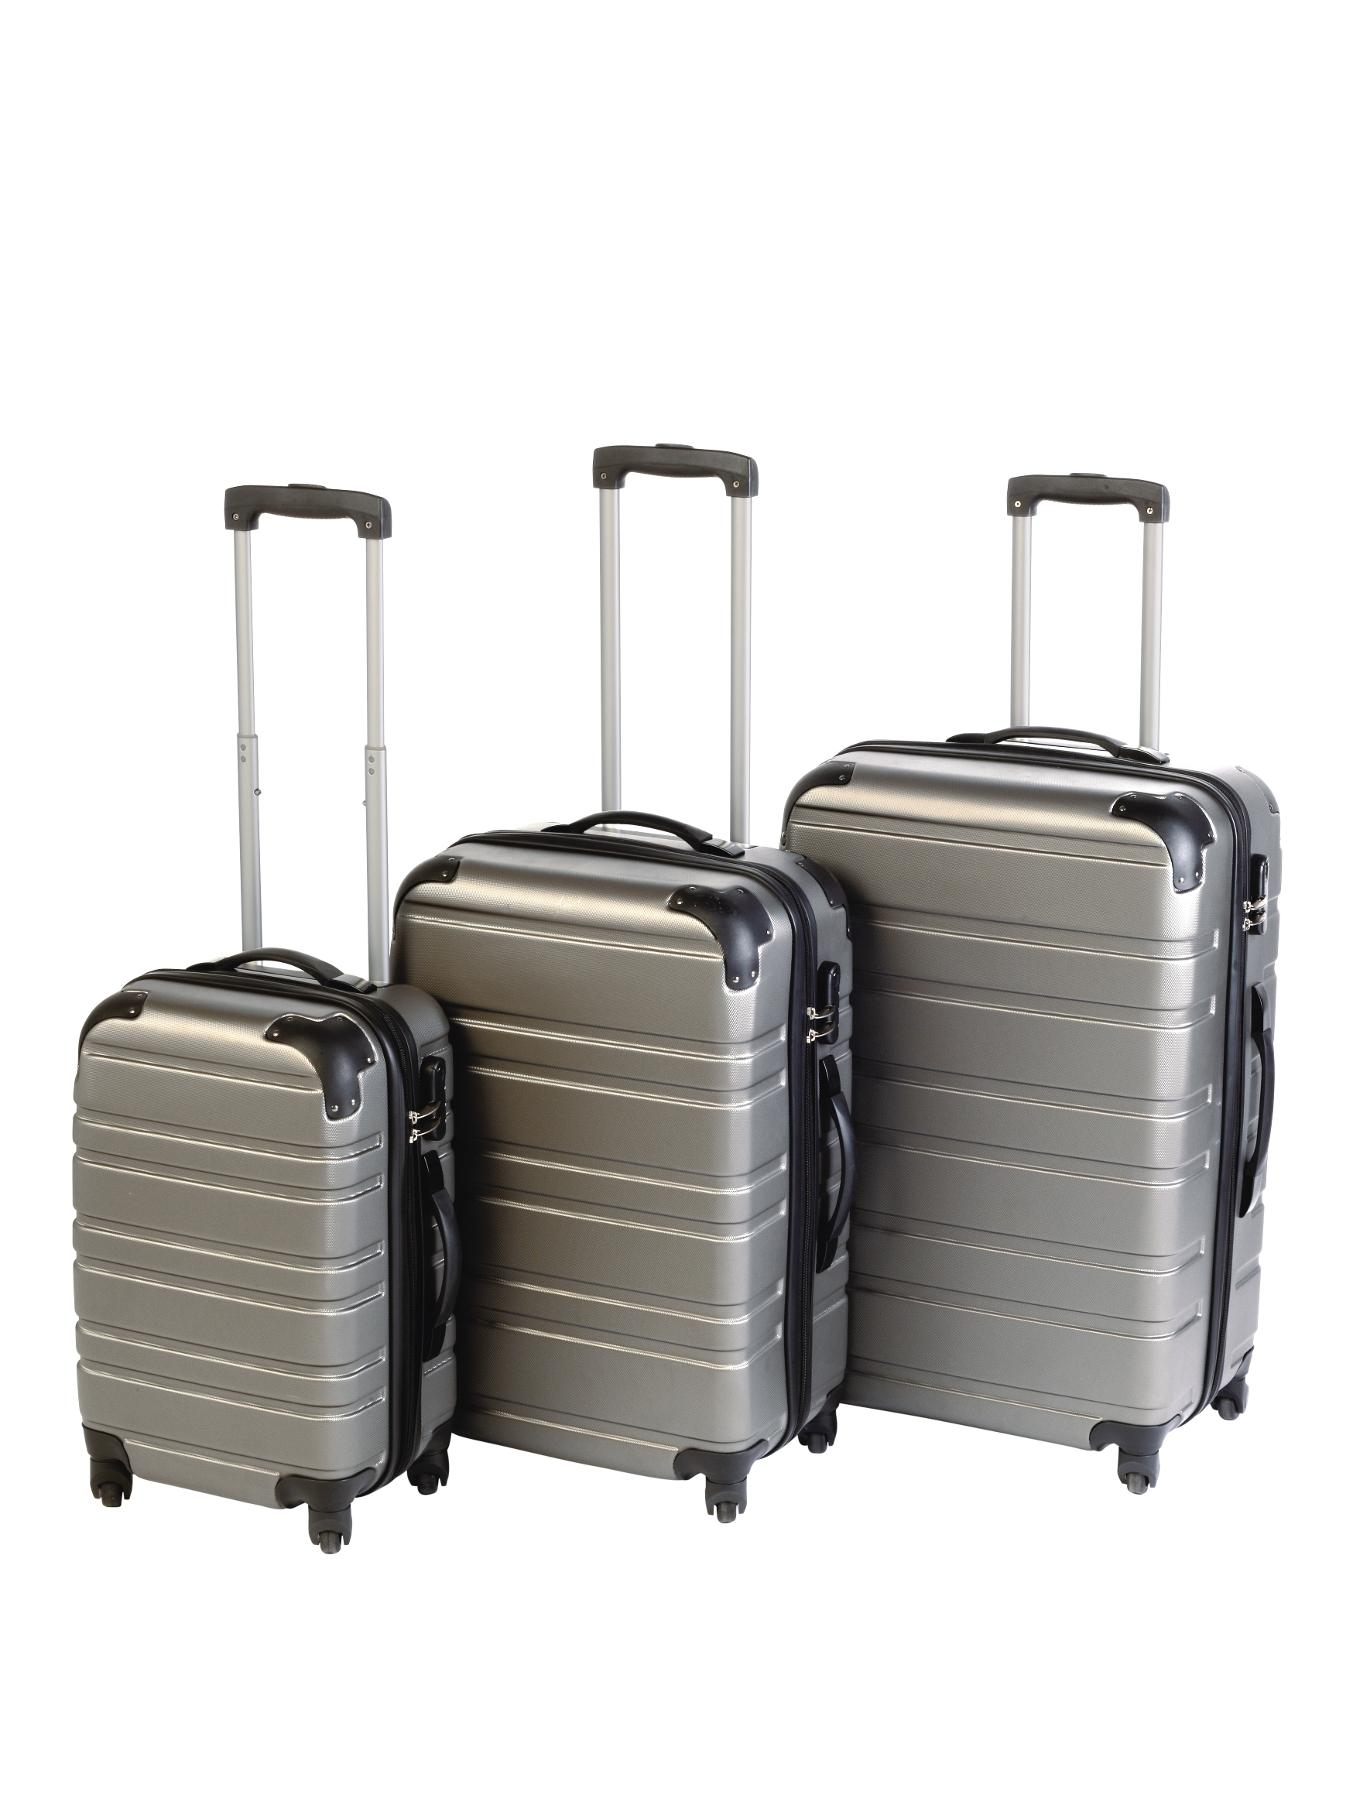 3-Piece ABS Luggage Set - Pewter